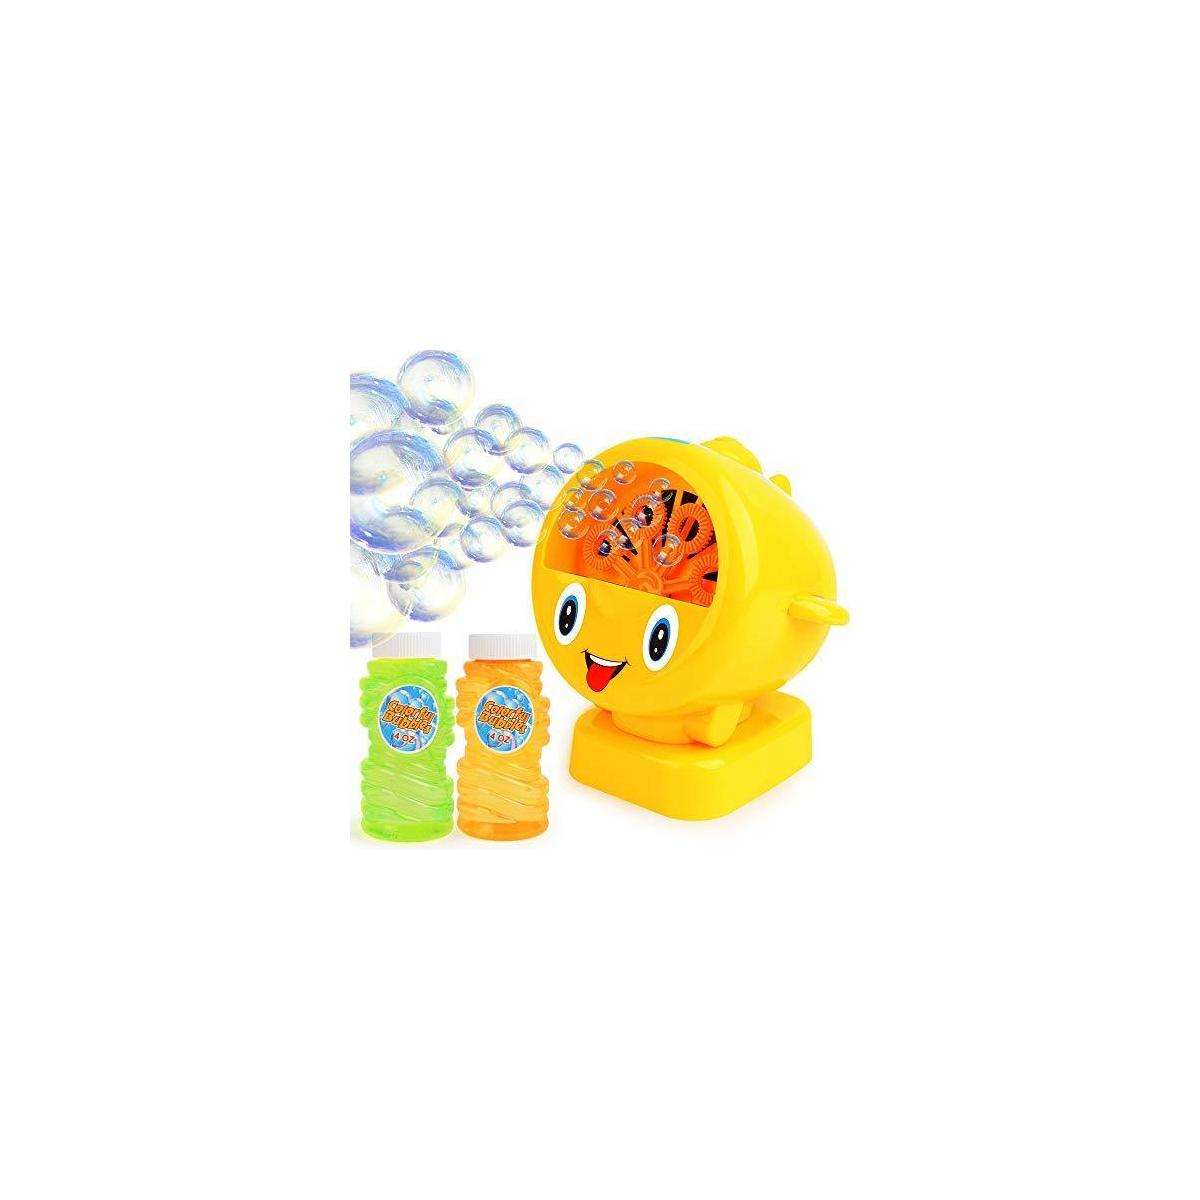 Automatic Bubble Machine for Kids – Battery Operated, Easy To Use  Bubble Toy for Kid and Adults - Gift Ideas for Kids Includes 4oz Bubble Solution – up to 500 Bubbles per Minute – Indoor and Outdoors